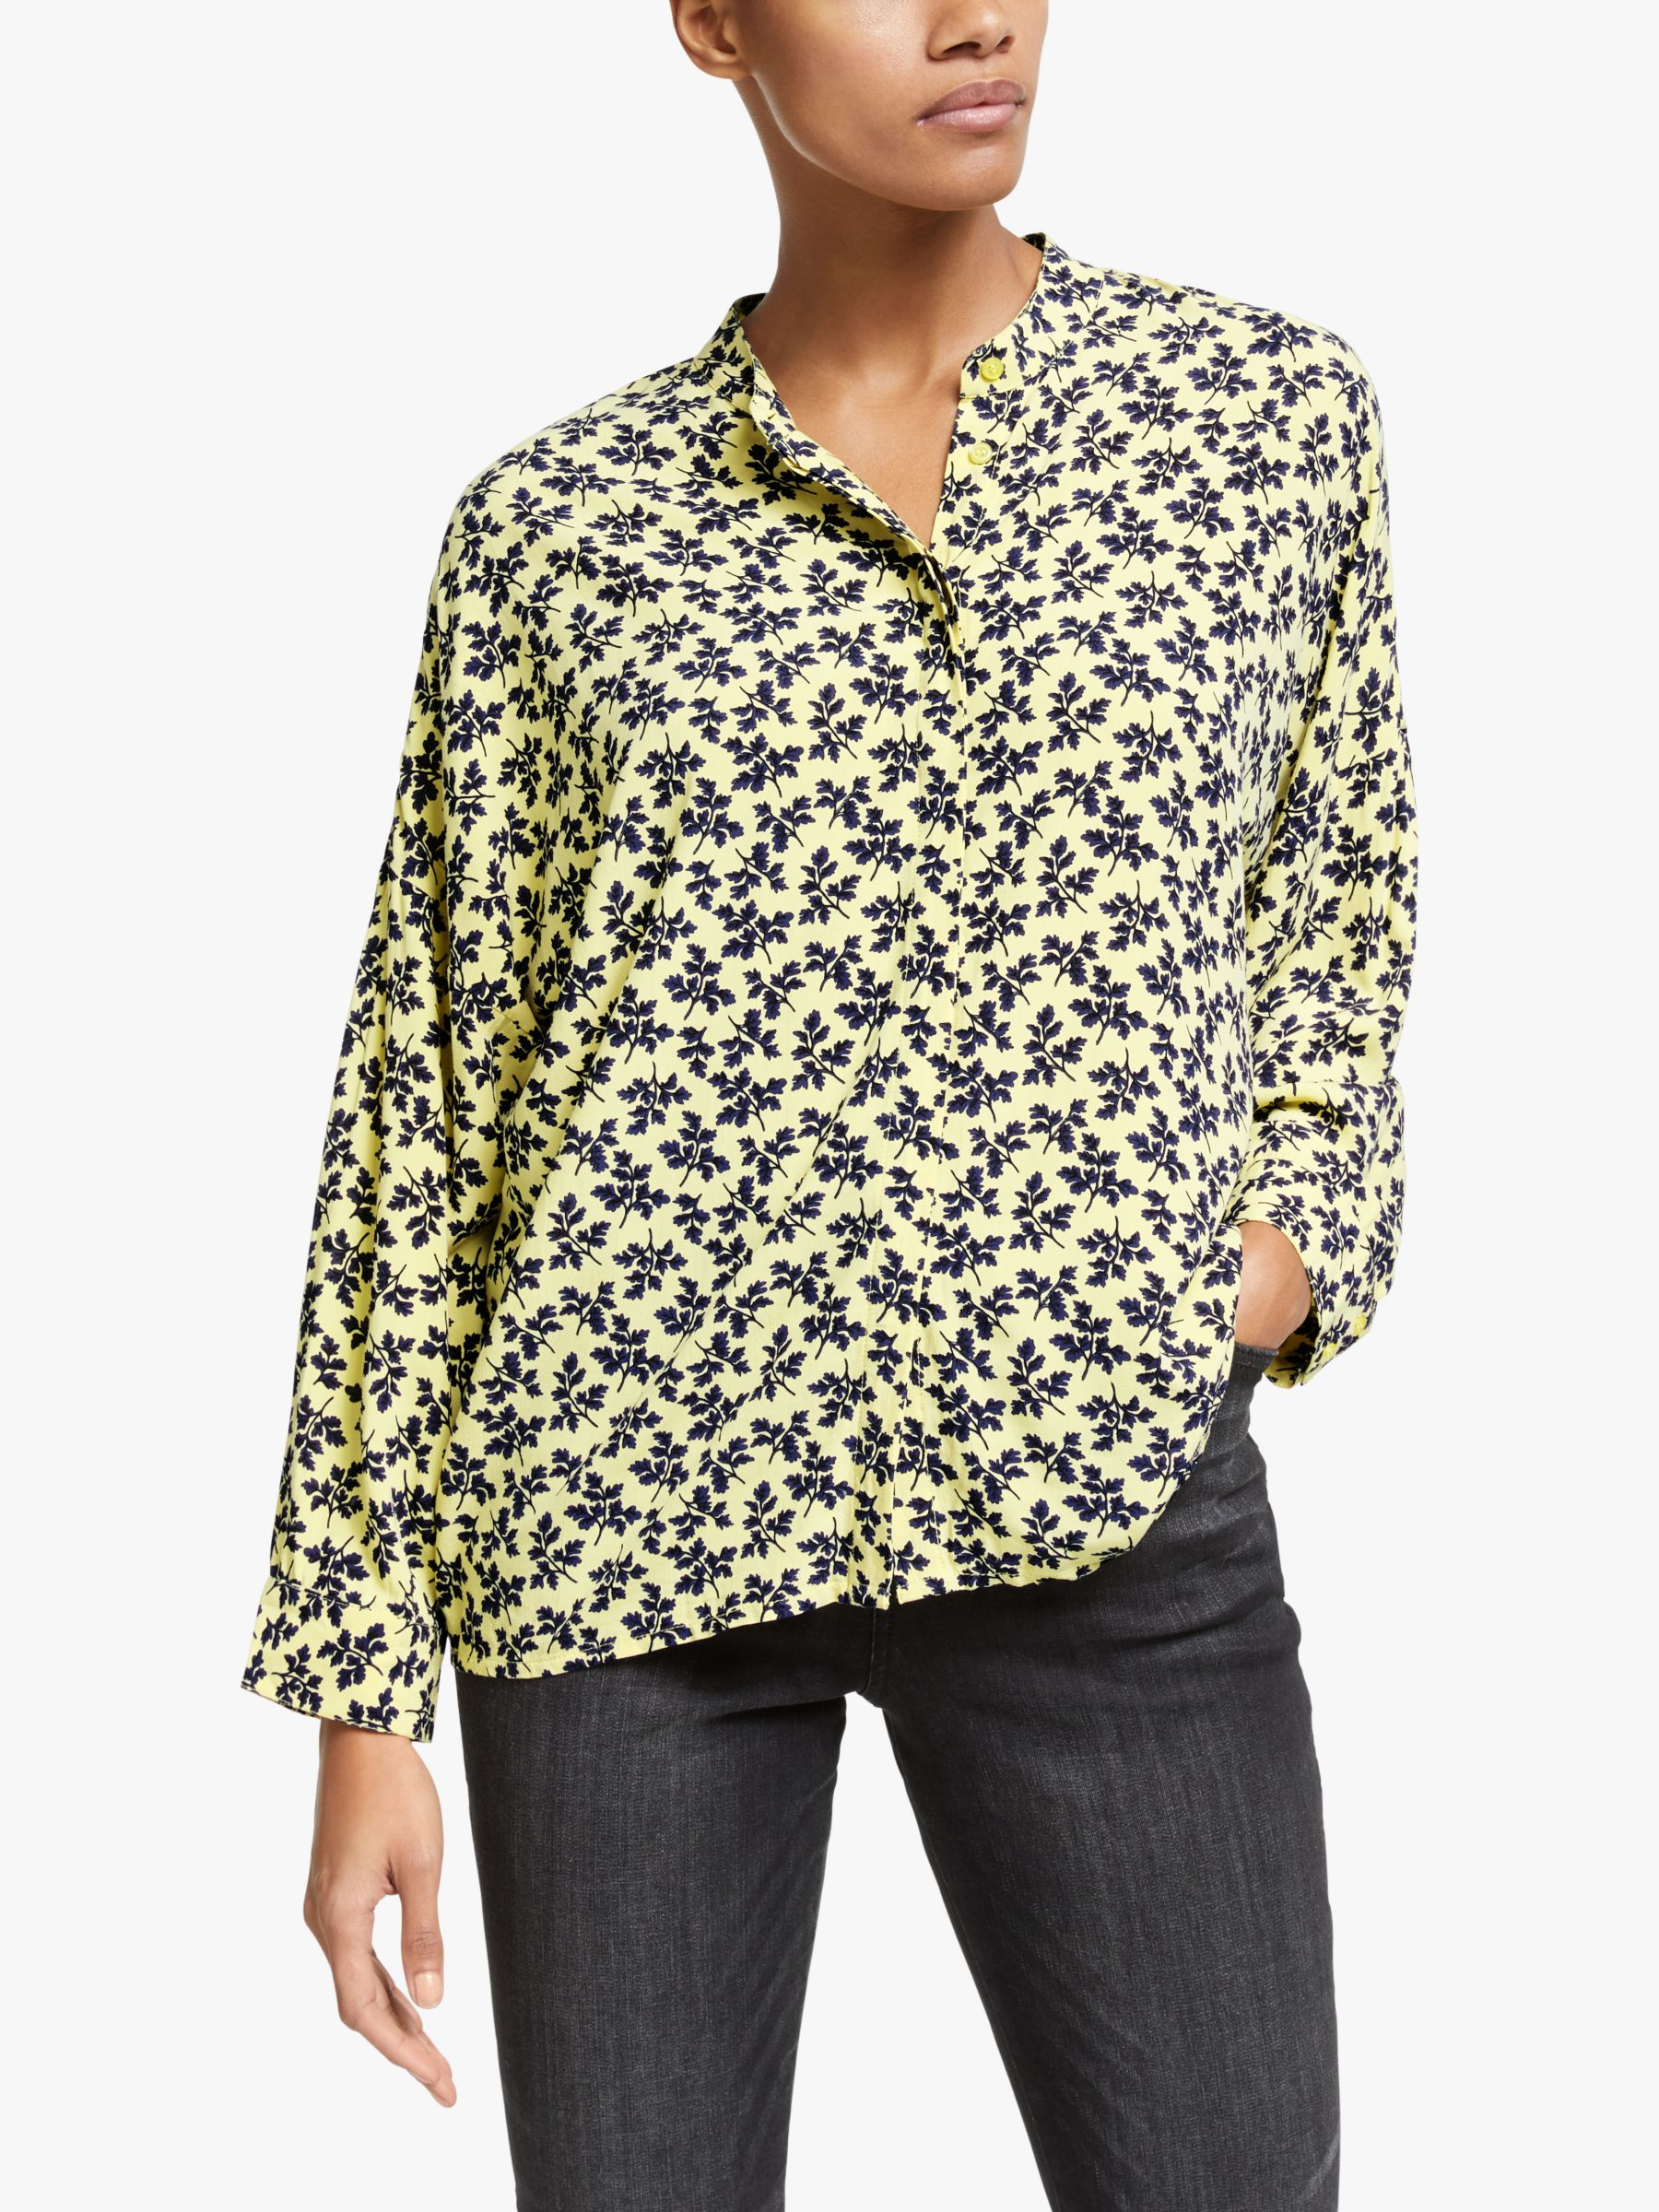 Y.a.s Y.A.S Lafera Printed Shirt, Yellow